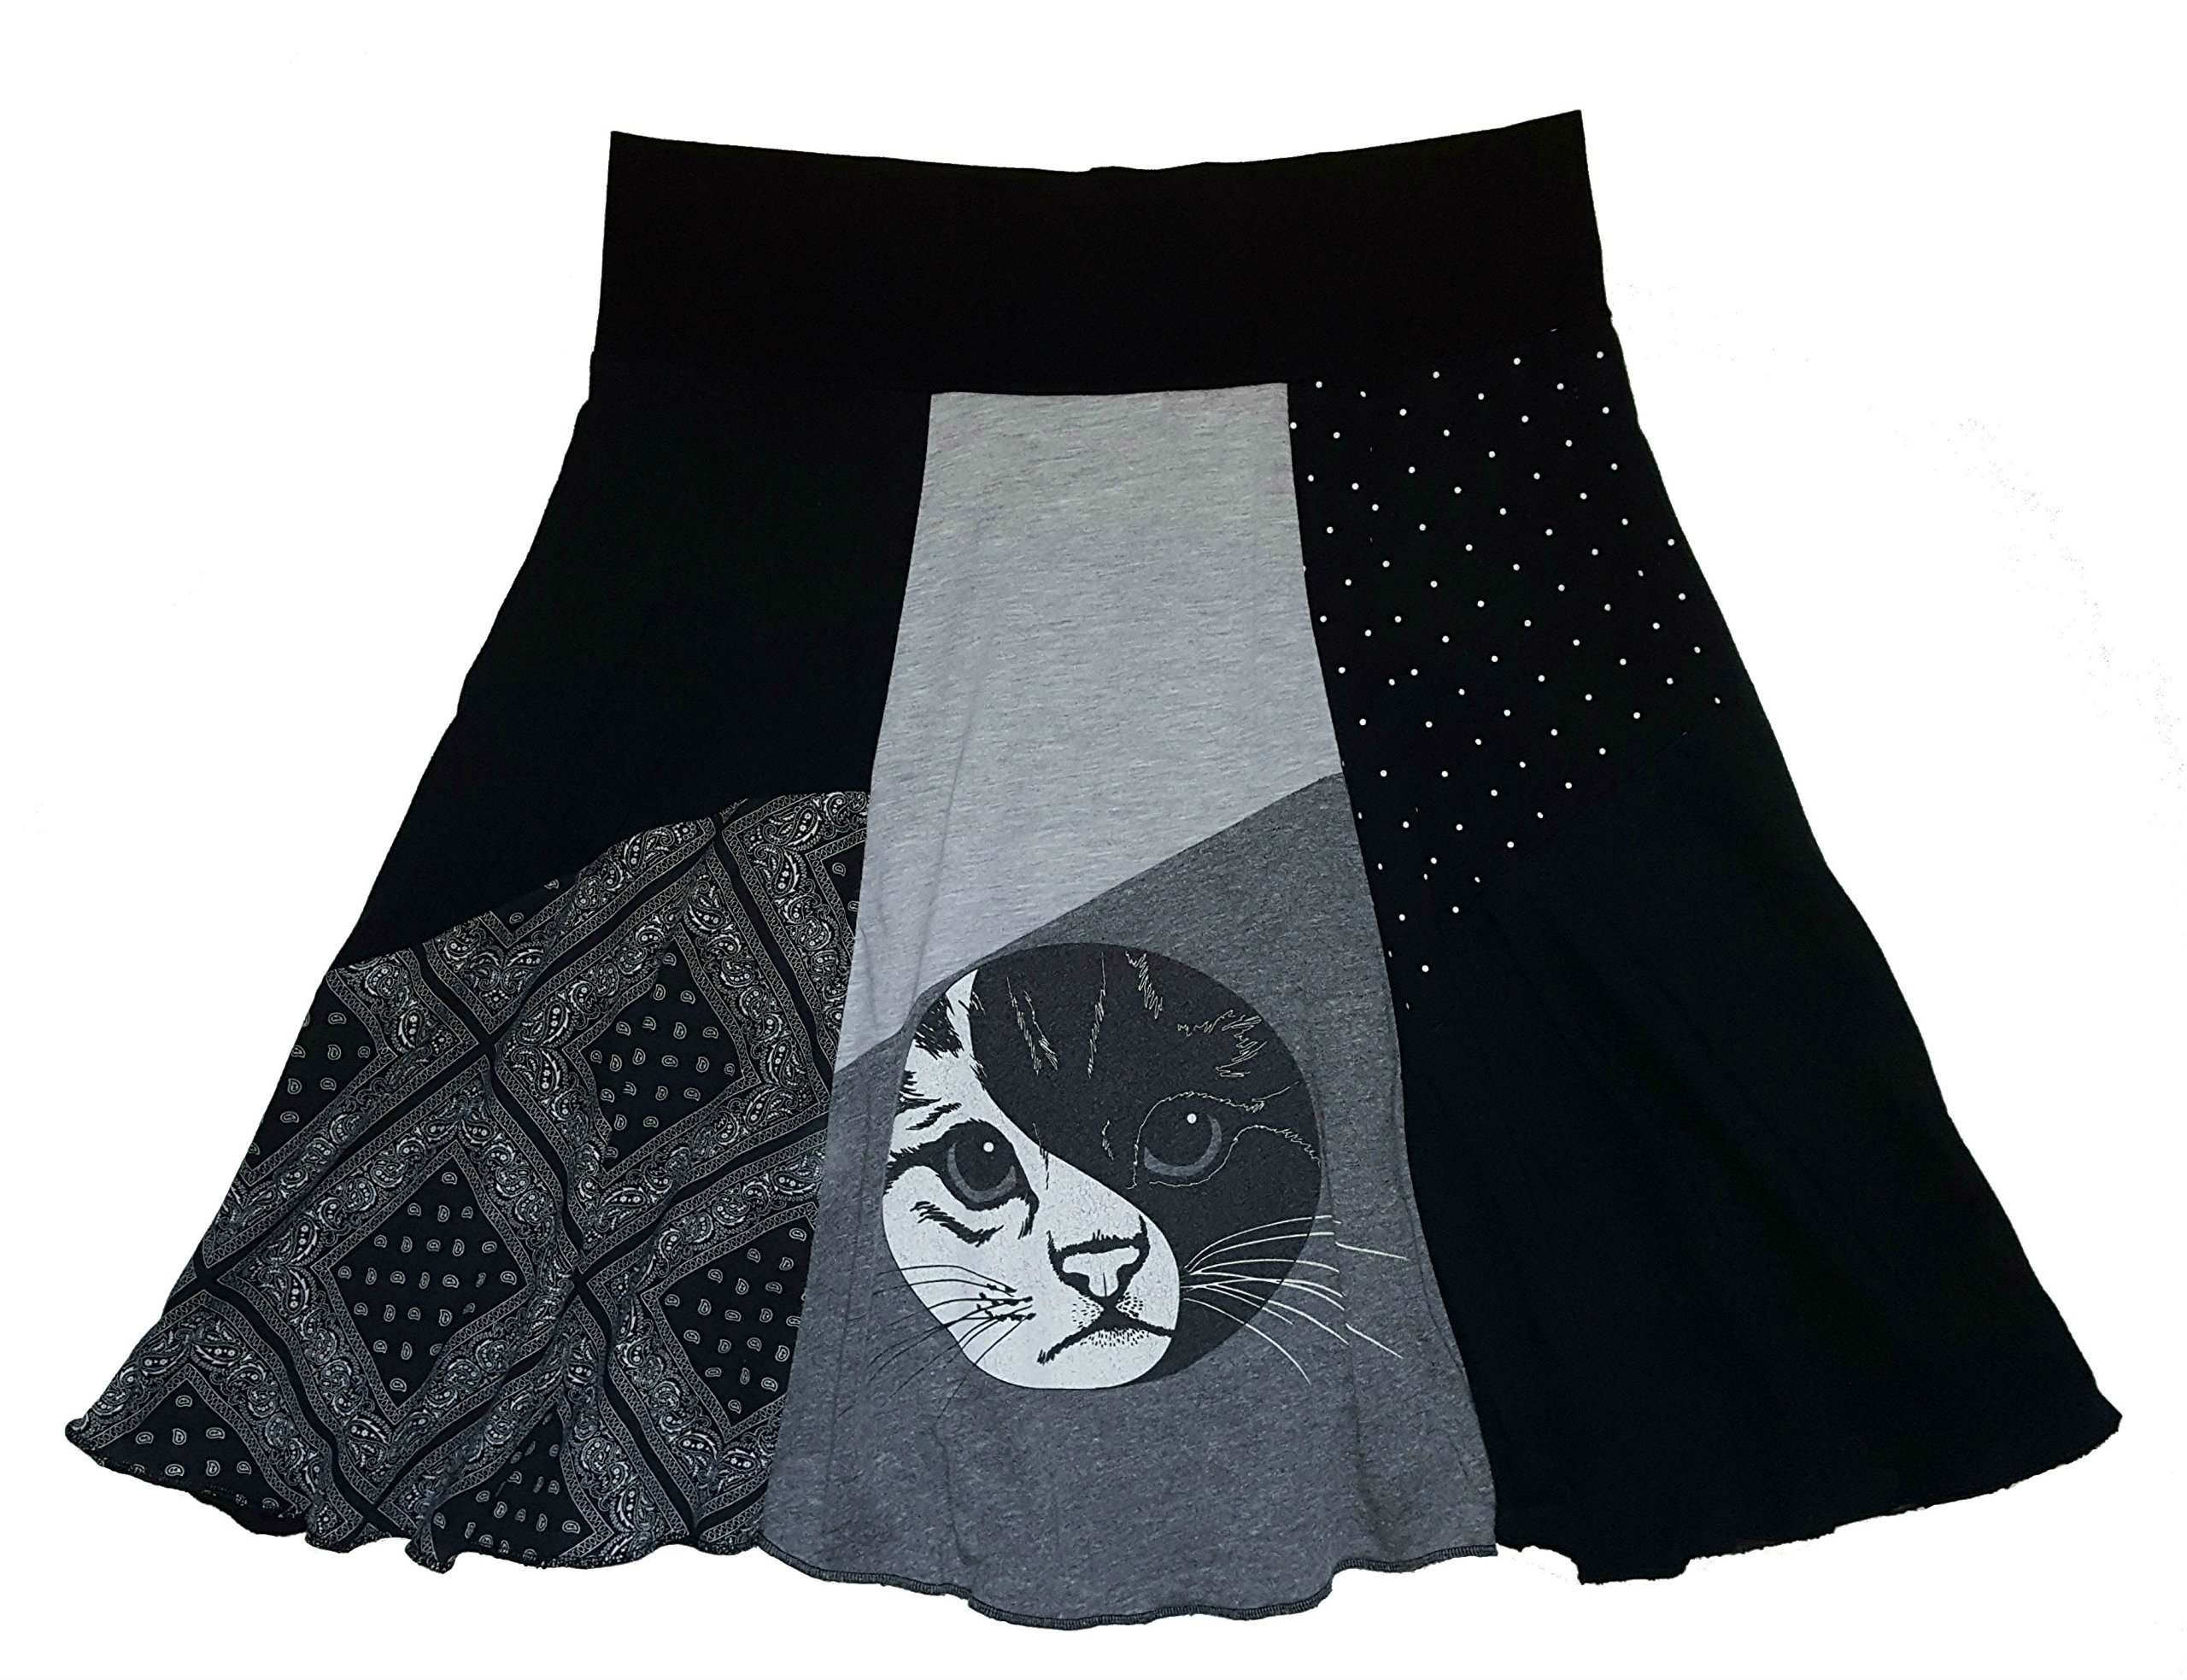 Yin Yang T-Shirt Skirt Women's Size L XL Handmade Upcycled One of a Kind Item